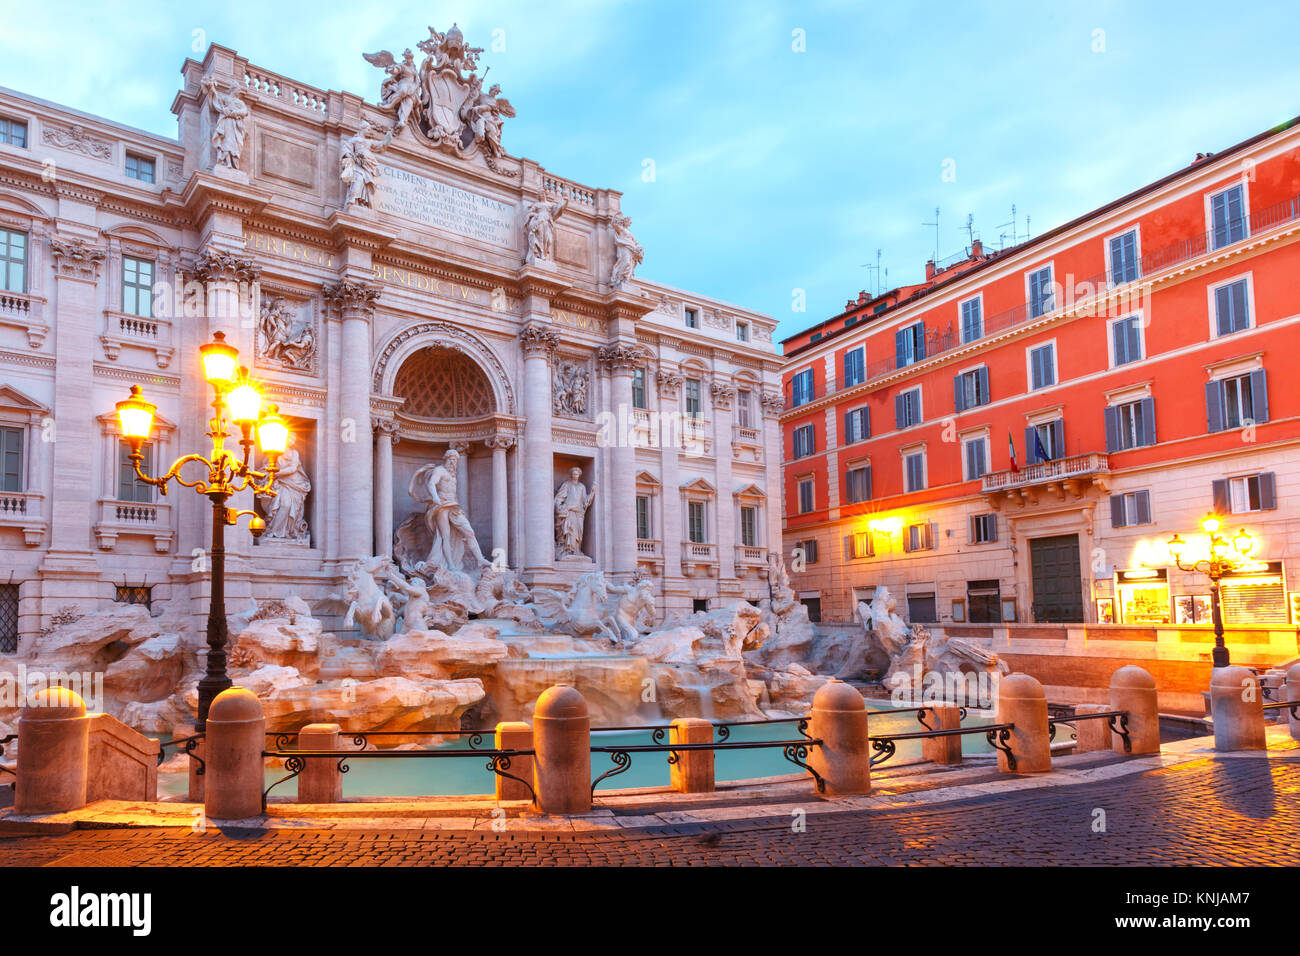 Trevi Fountain or Fontana di Trevi in Rome, Italy - Stock Image